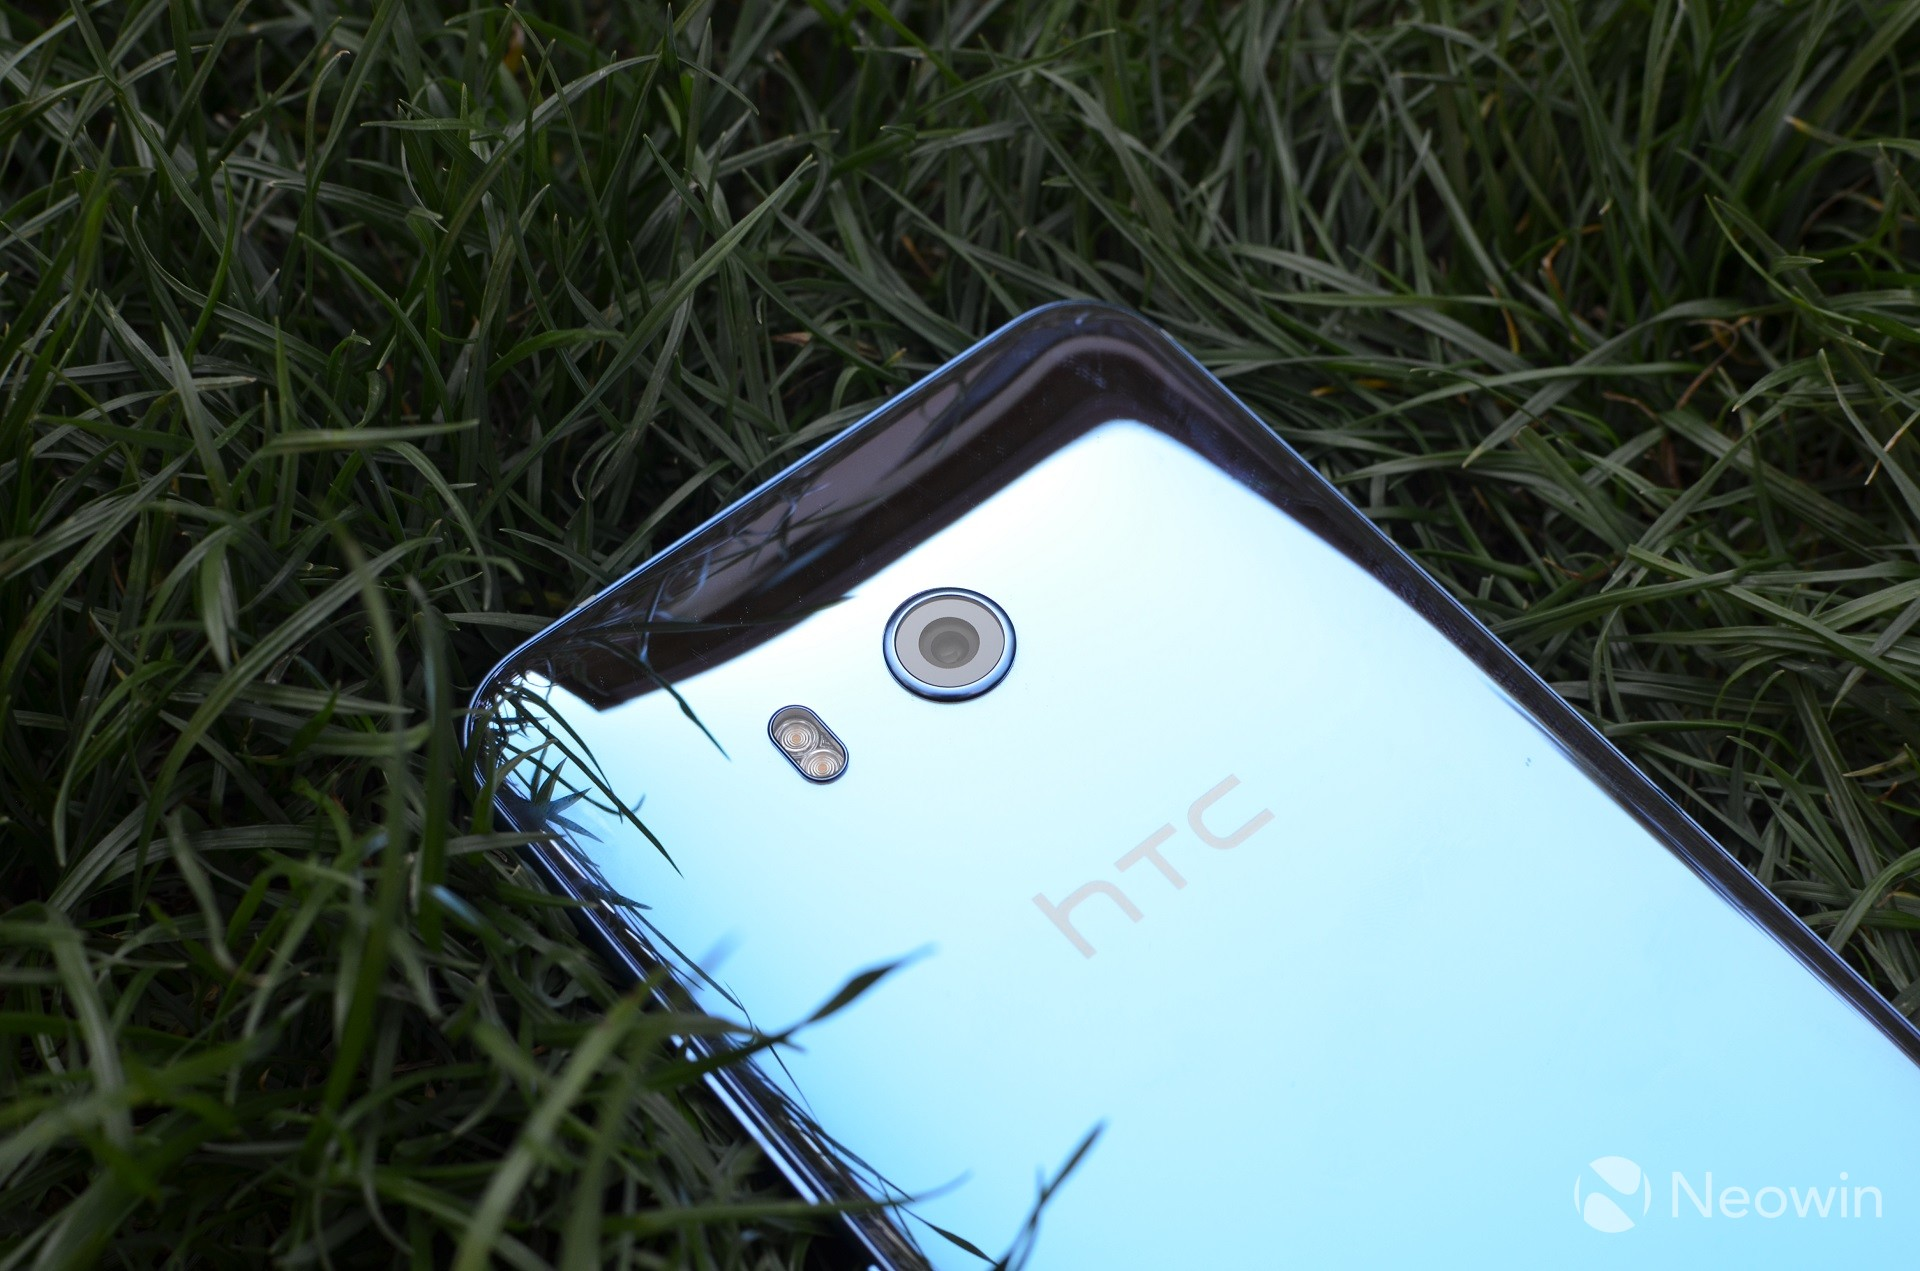 Android flagship HTC U11 Plus spec-sheet leaks ahead of November launch